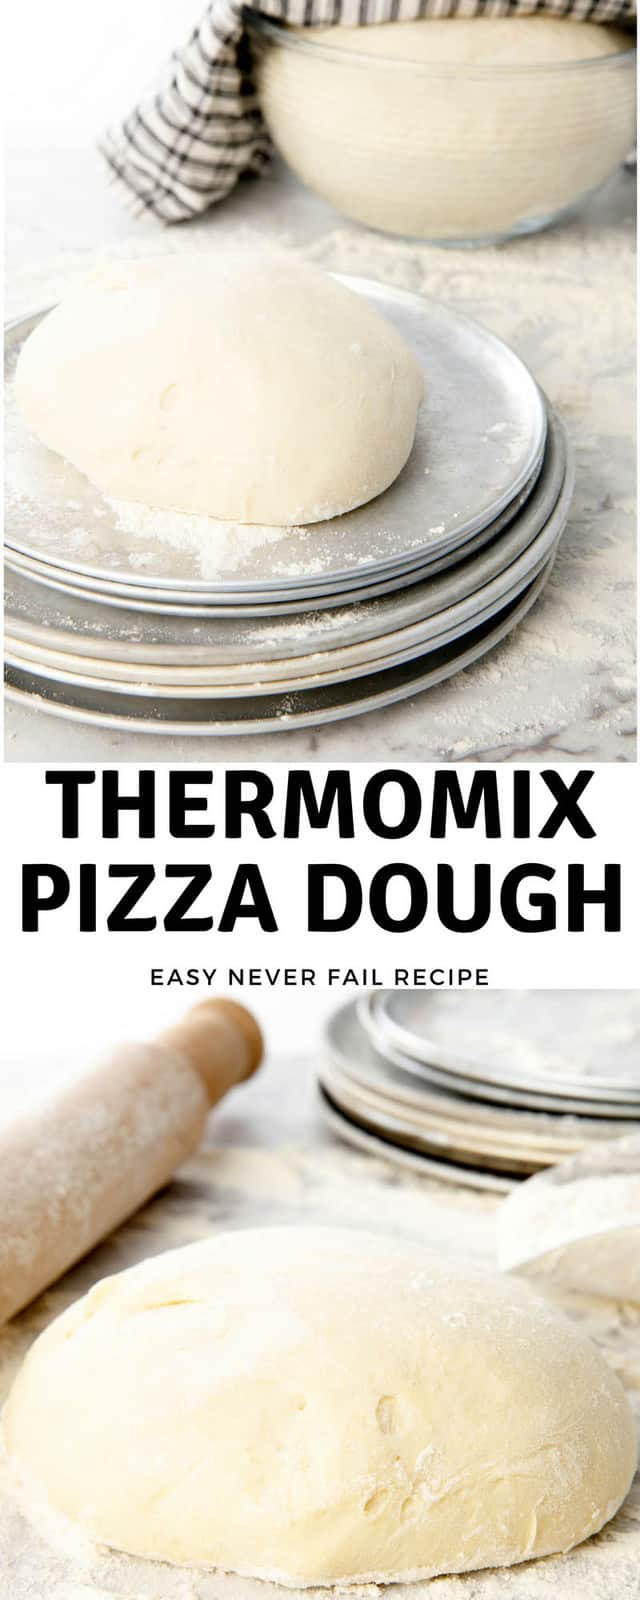 Thermomix Pizza Dough PIN